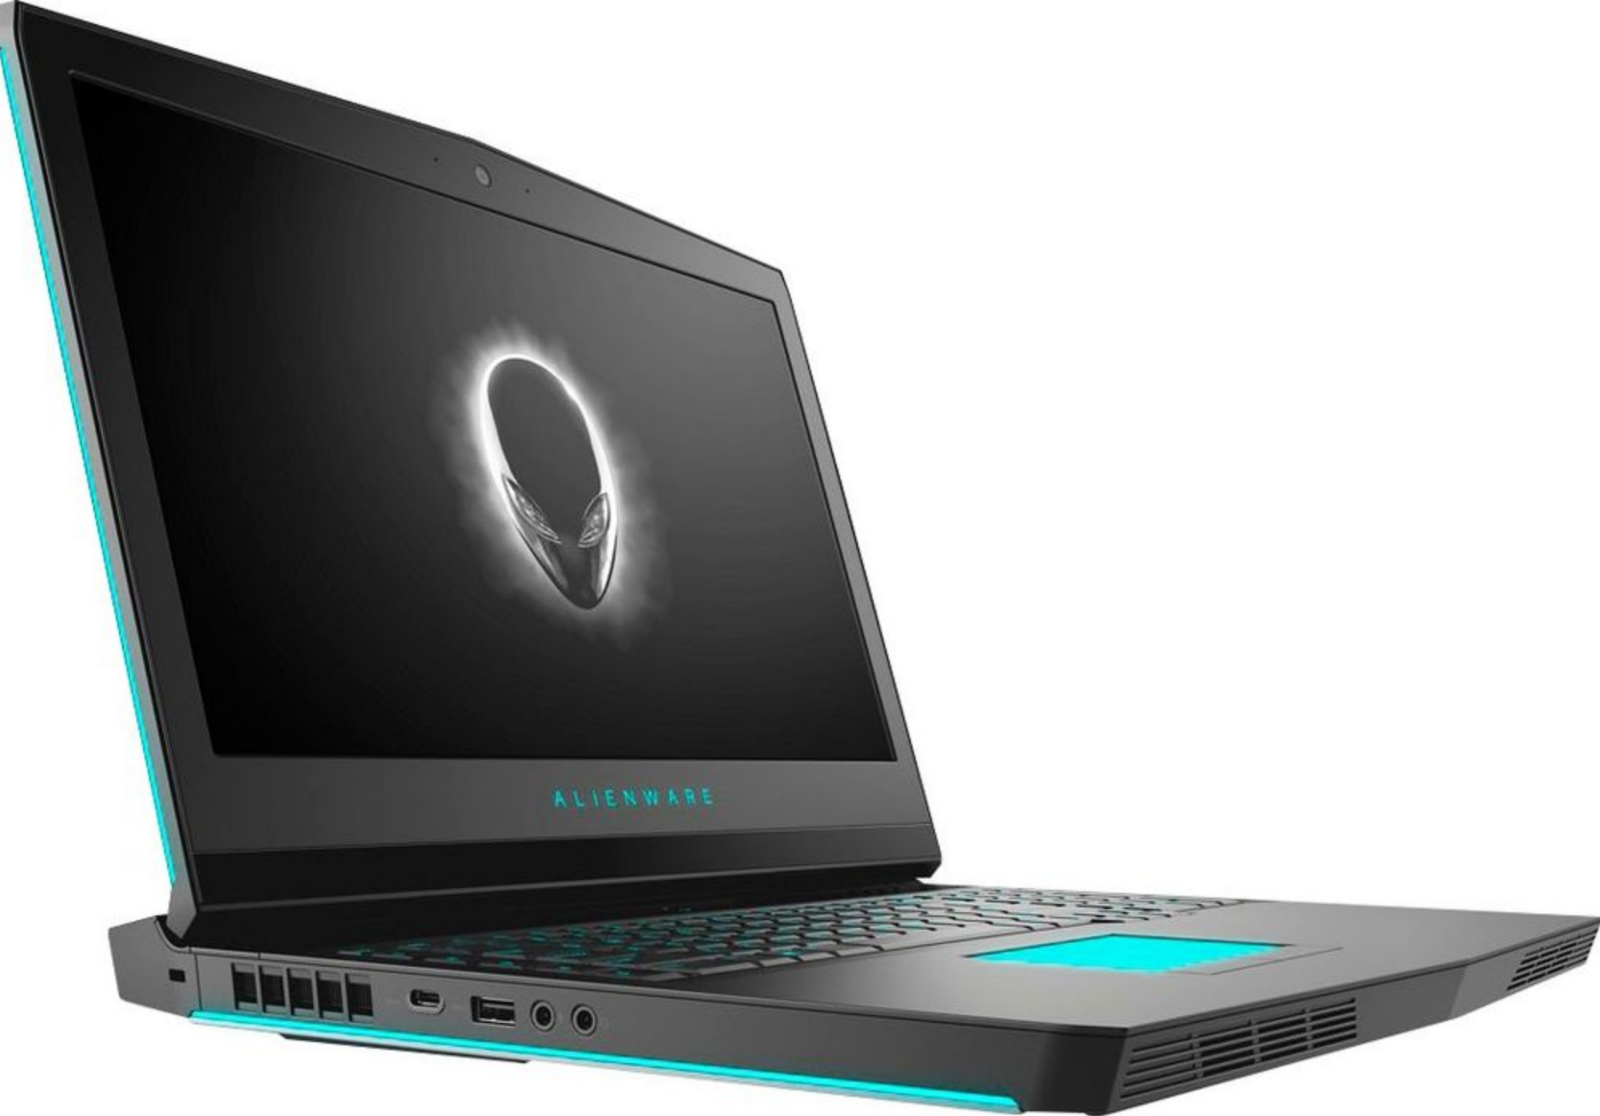 Alienware 17 3 Laptop Intel Core I7 16gb Memory Nvidia Geforce Gtx 1070 Laptops Gaming Notebook Laptop Hdd